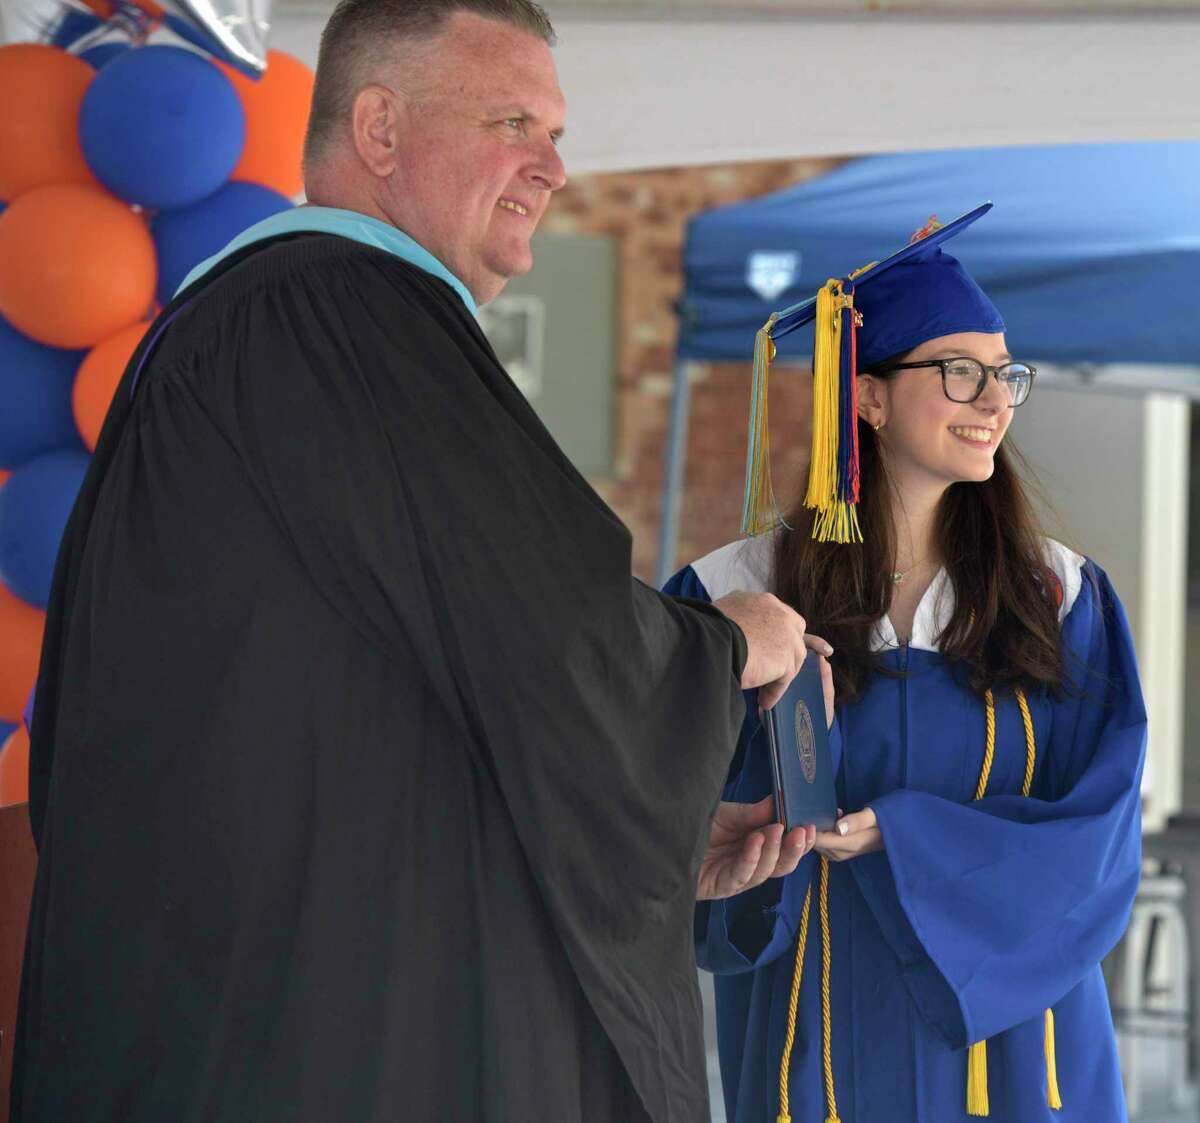 Principal Daniel Donovan posses for a photograph with graduate Rebecca Leigh Andersen during the 2020 Danbury High School graduation, Wednesday, June 10, 2020, at Danbury High School, Danbury, Conn. Graduation is taking place over three days, June 10, 11, and 12.